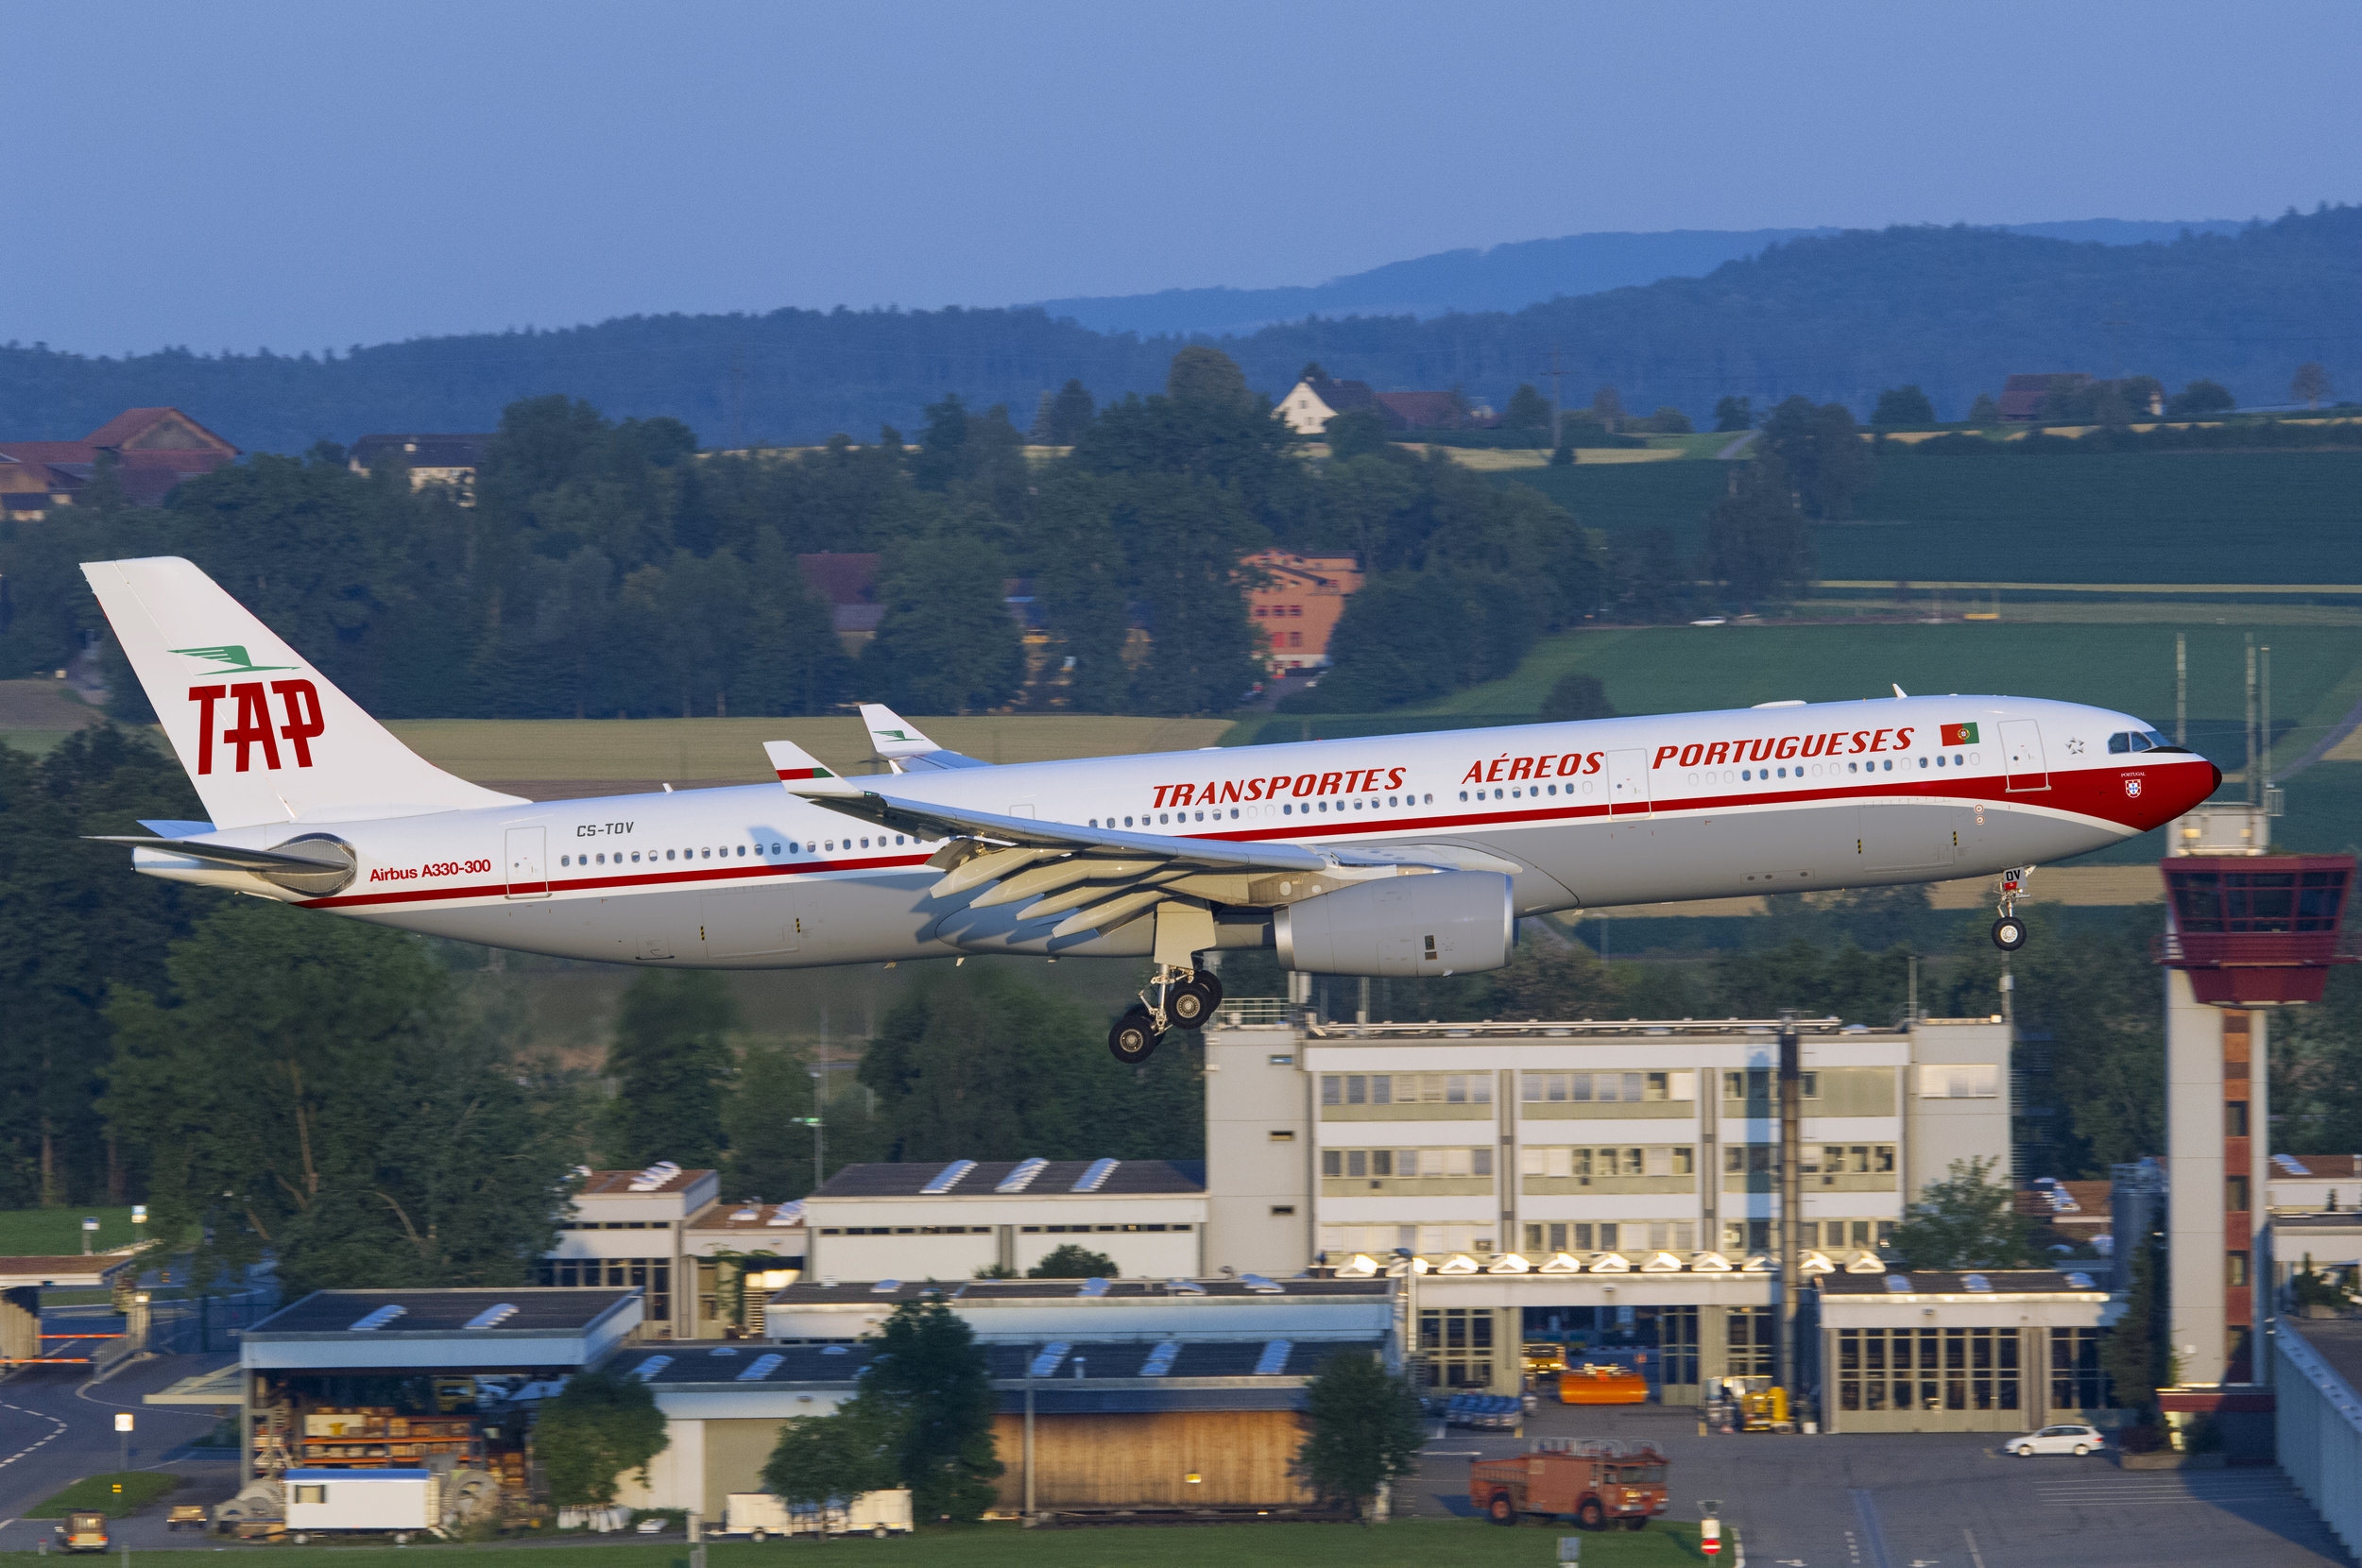 Not only the safety video evokes TAP's history, also this A330 painted in this magnificent retro livery